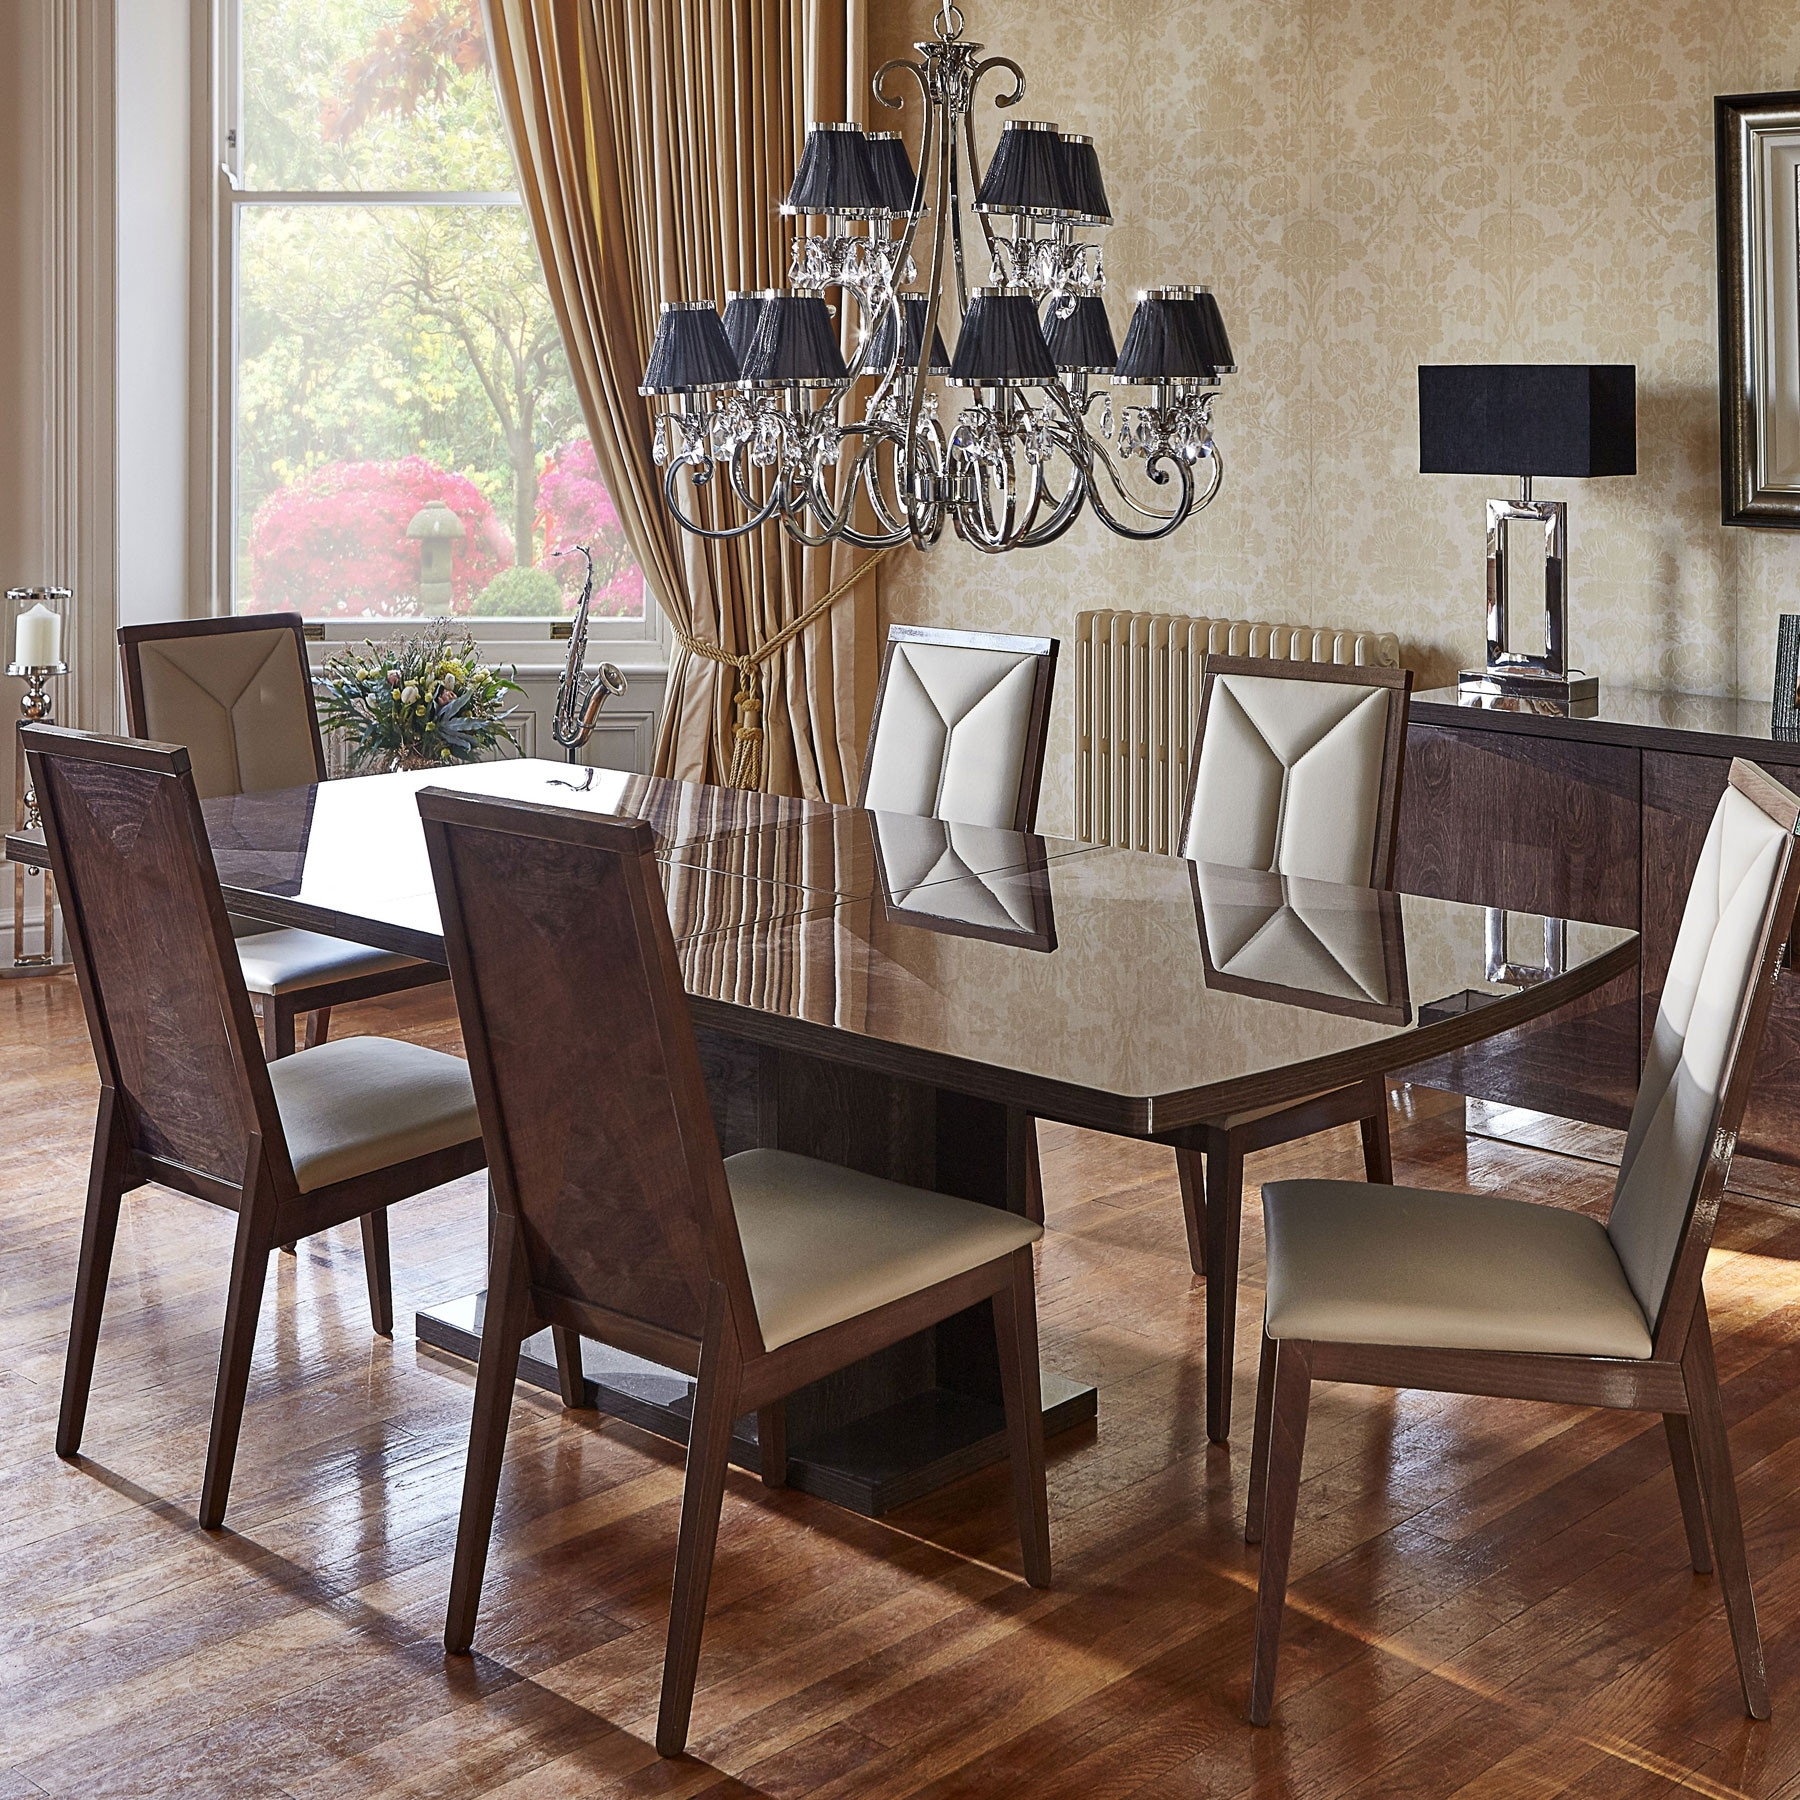 Extending Dining Tables 6 Chairs Inside Most Current Vogue High Gloss Extending Dining Table & 6 Chairs (Gallery 10 of 25)